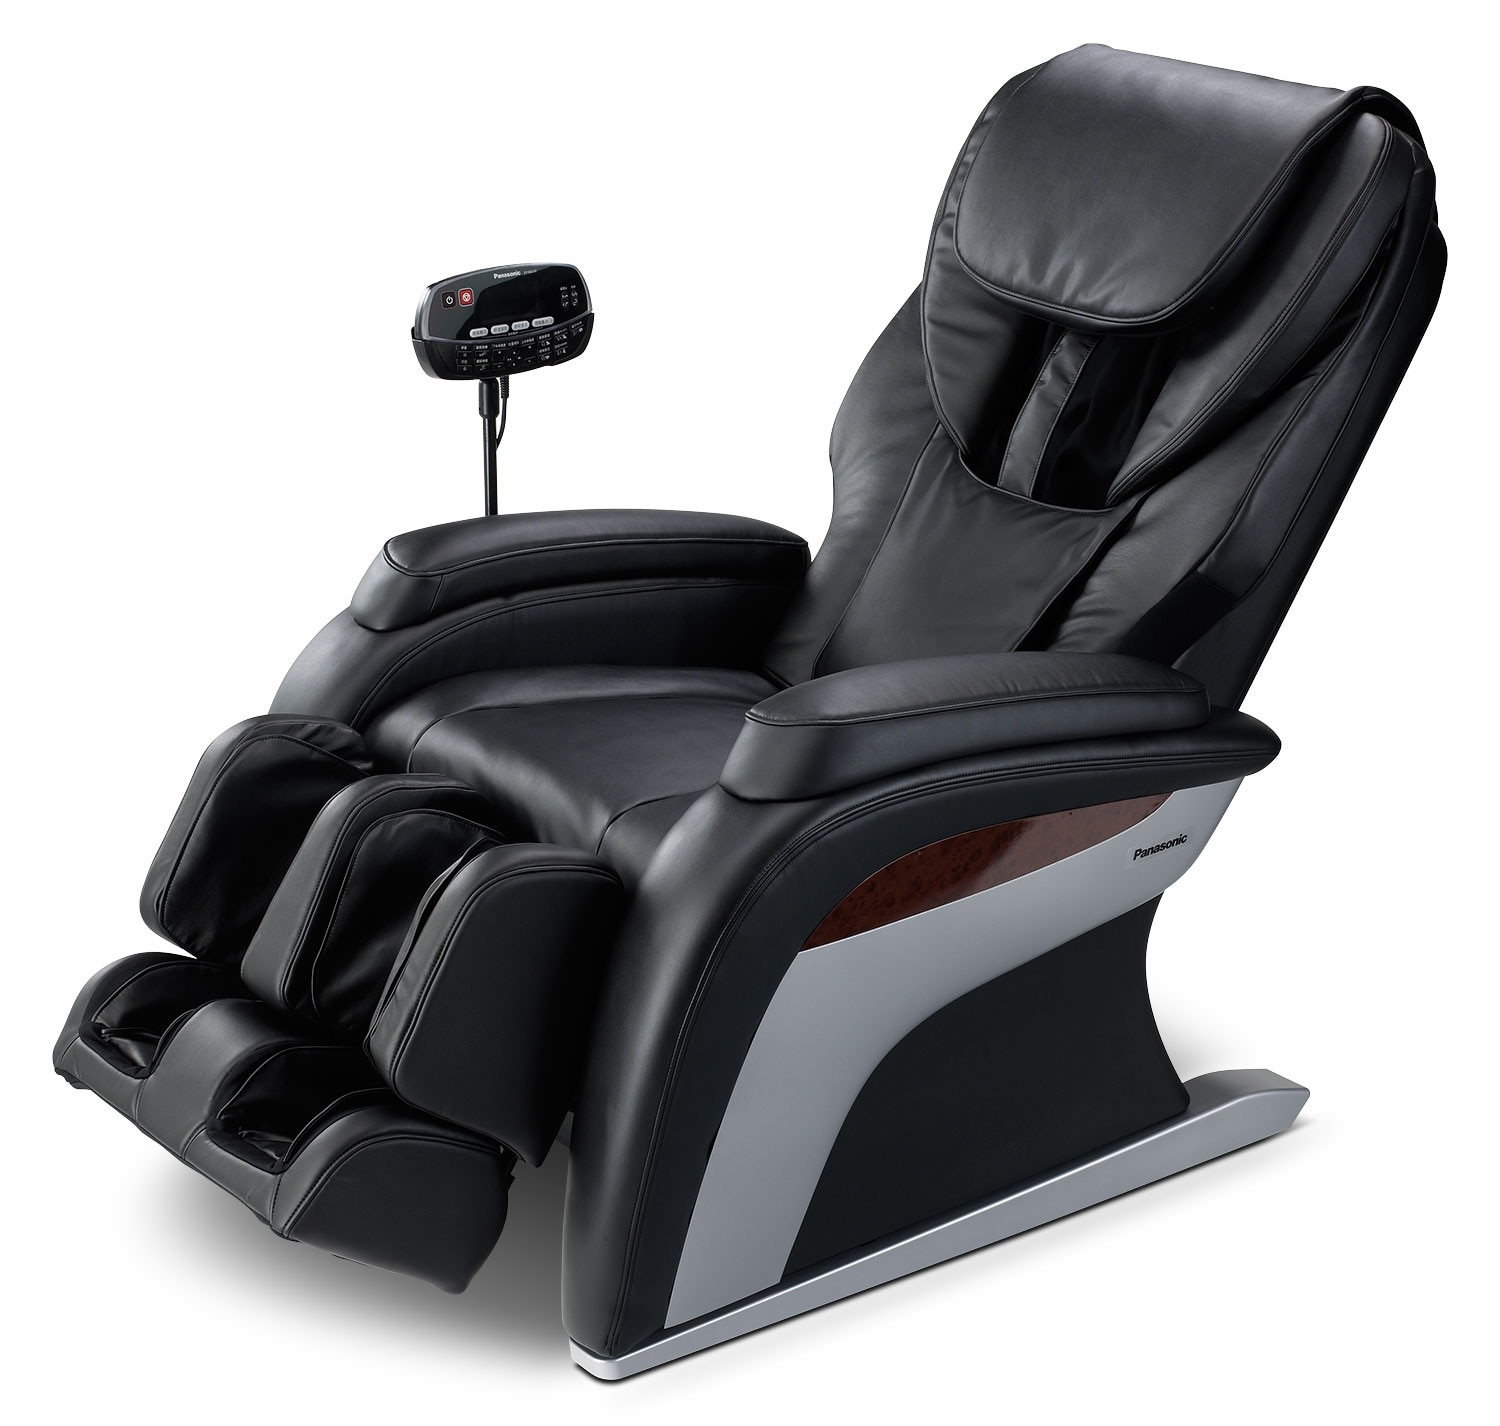 used massage chairs for sale christopher knight leather chair panasonic urban collection reclining black